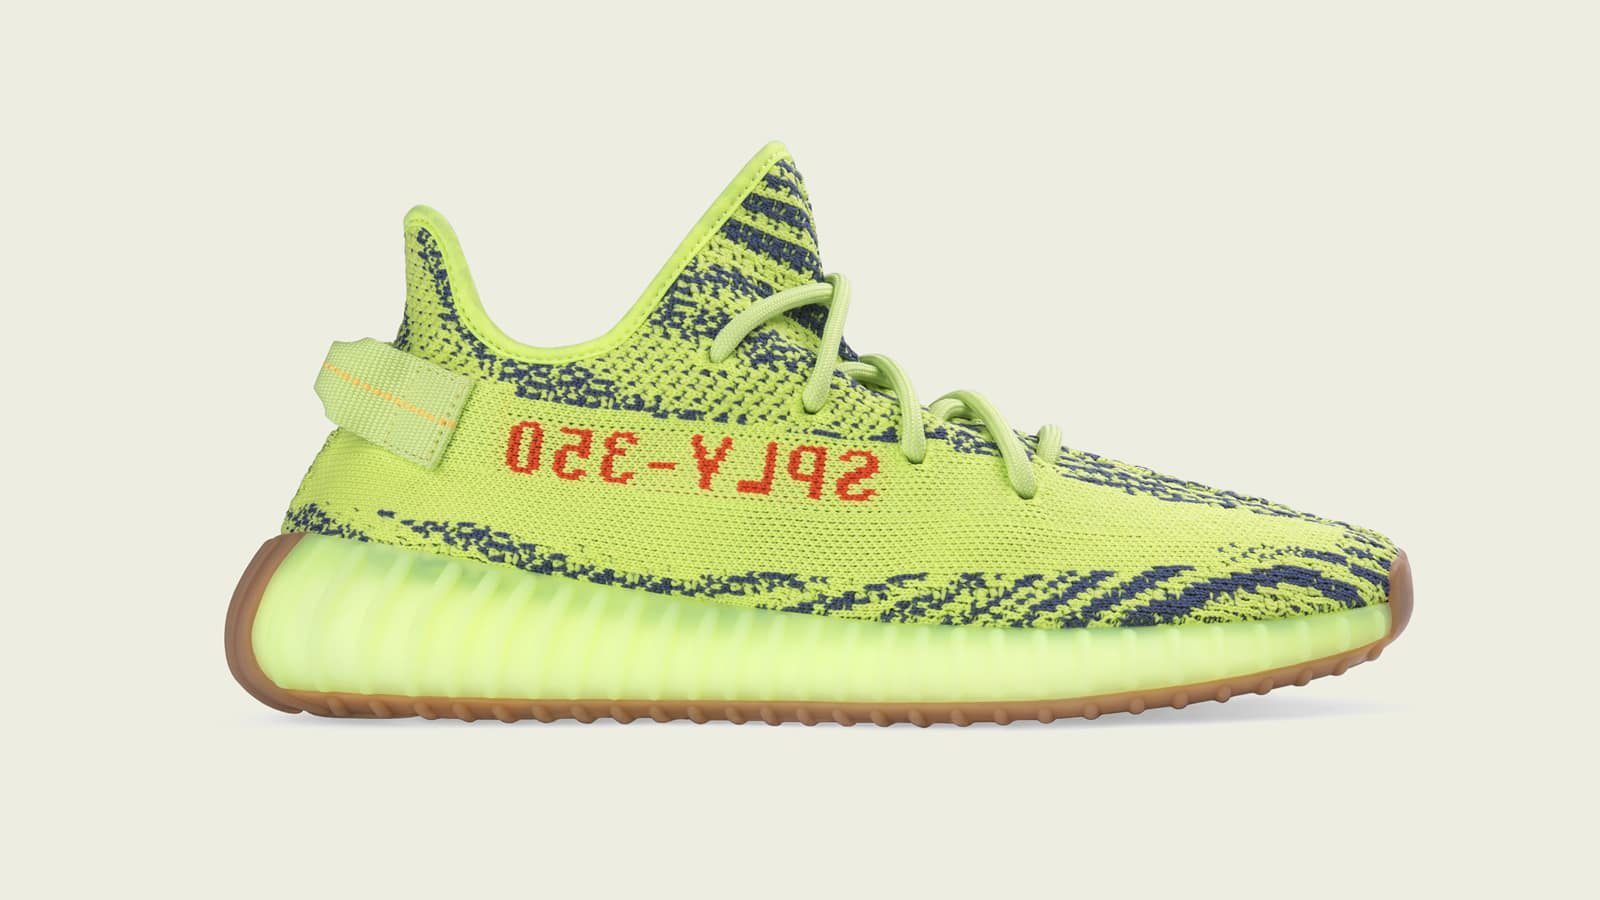 Adidas Yeezy Boost 350 V2 Frozen Yellow Sneakers Boutique